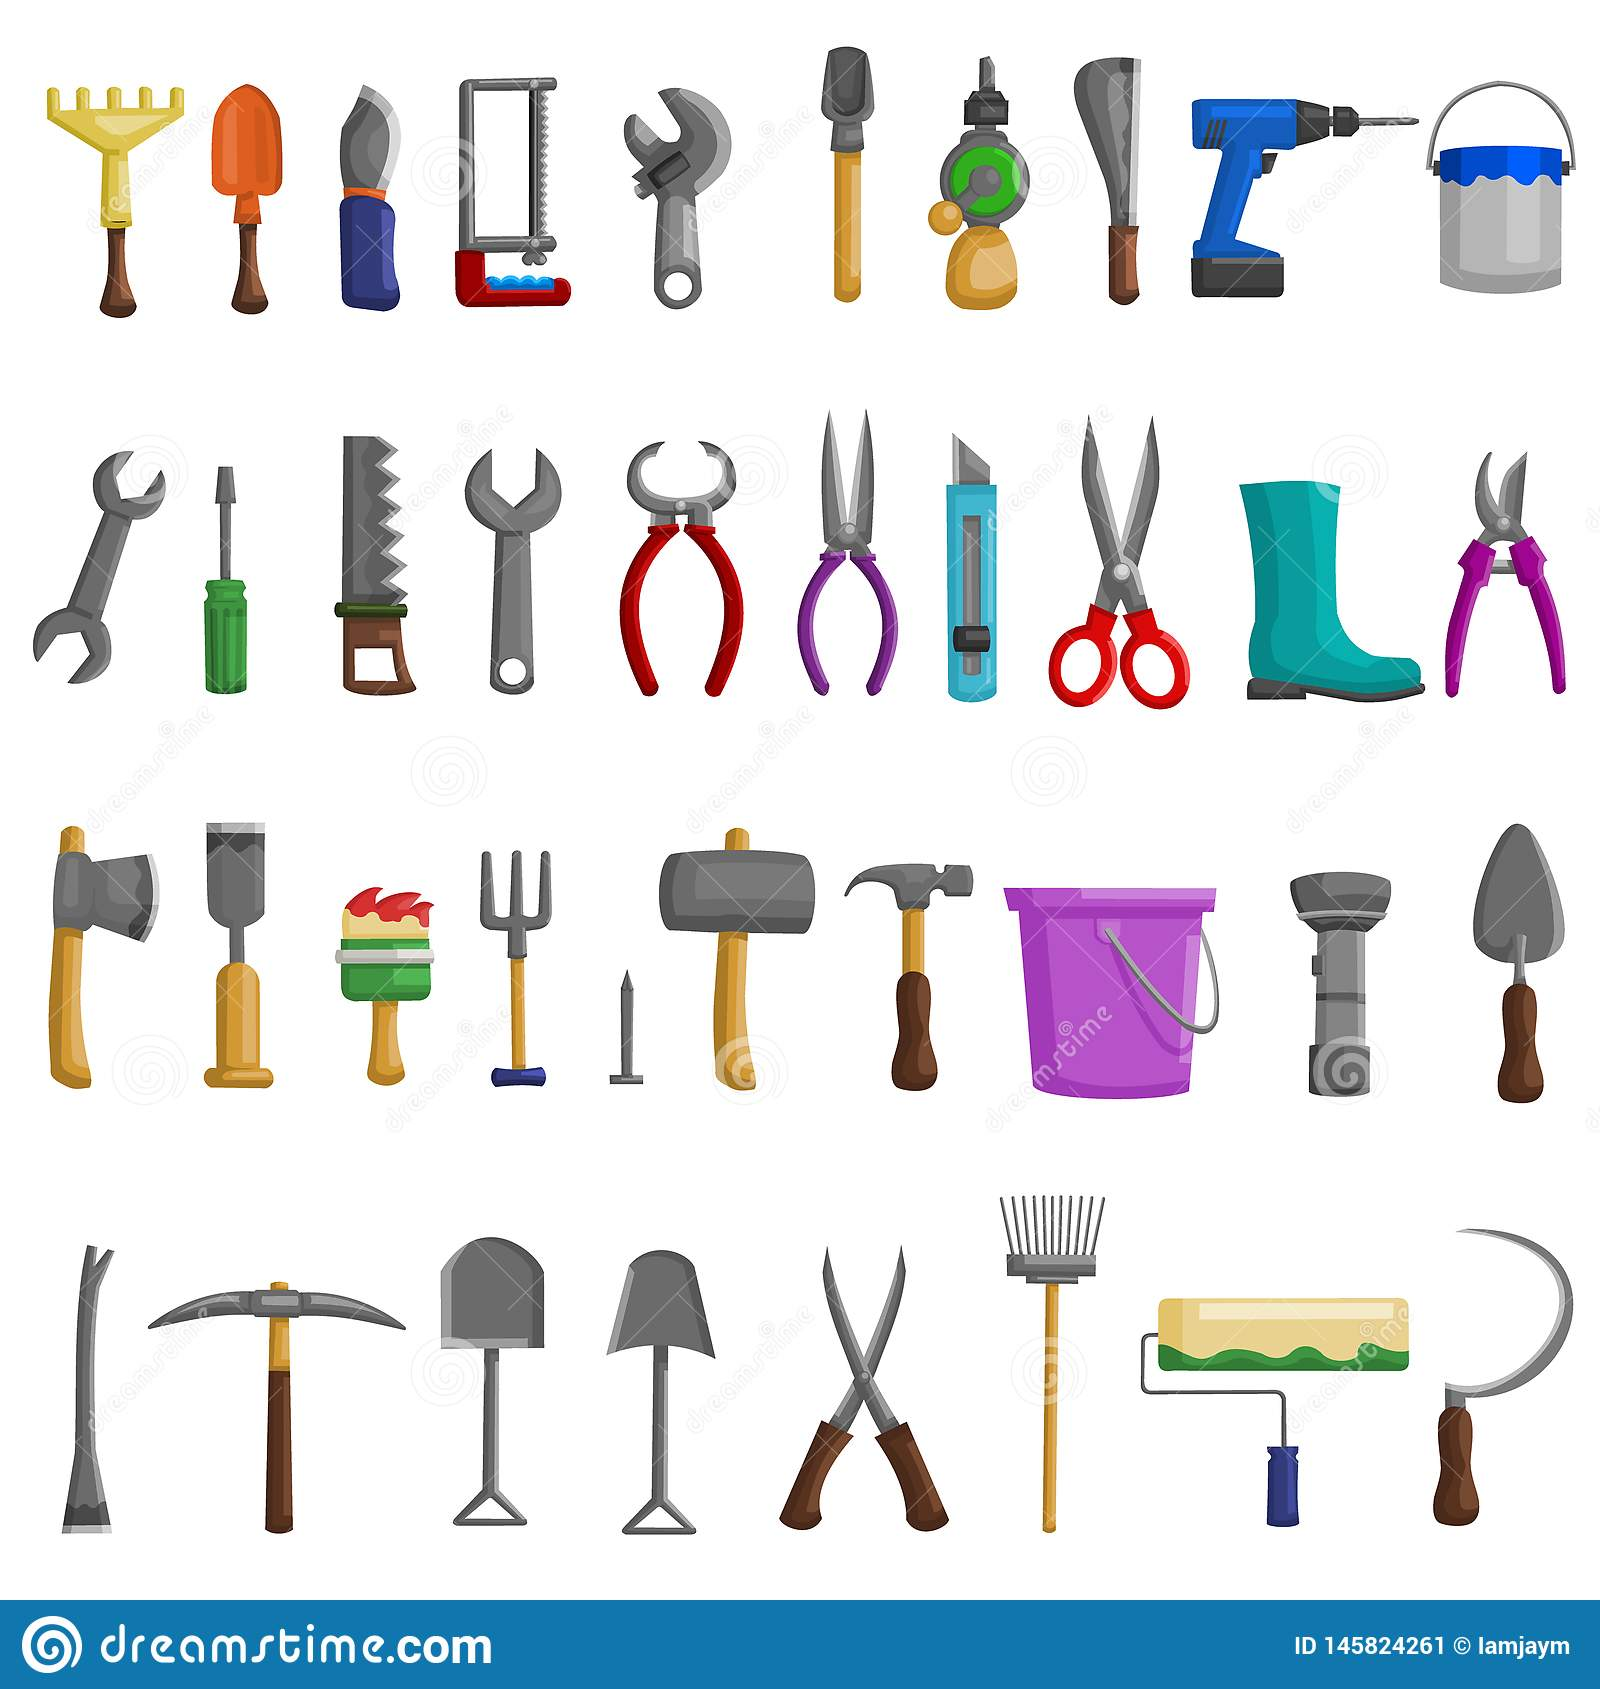 Vector Illustration Hammer: Stock Vector Illustration Set Isolated Icons Building